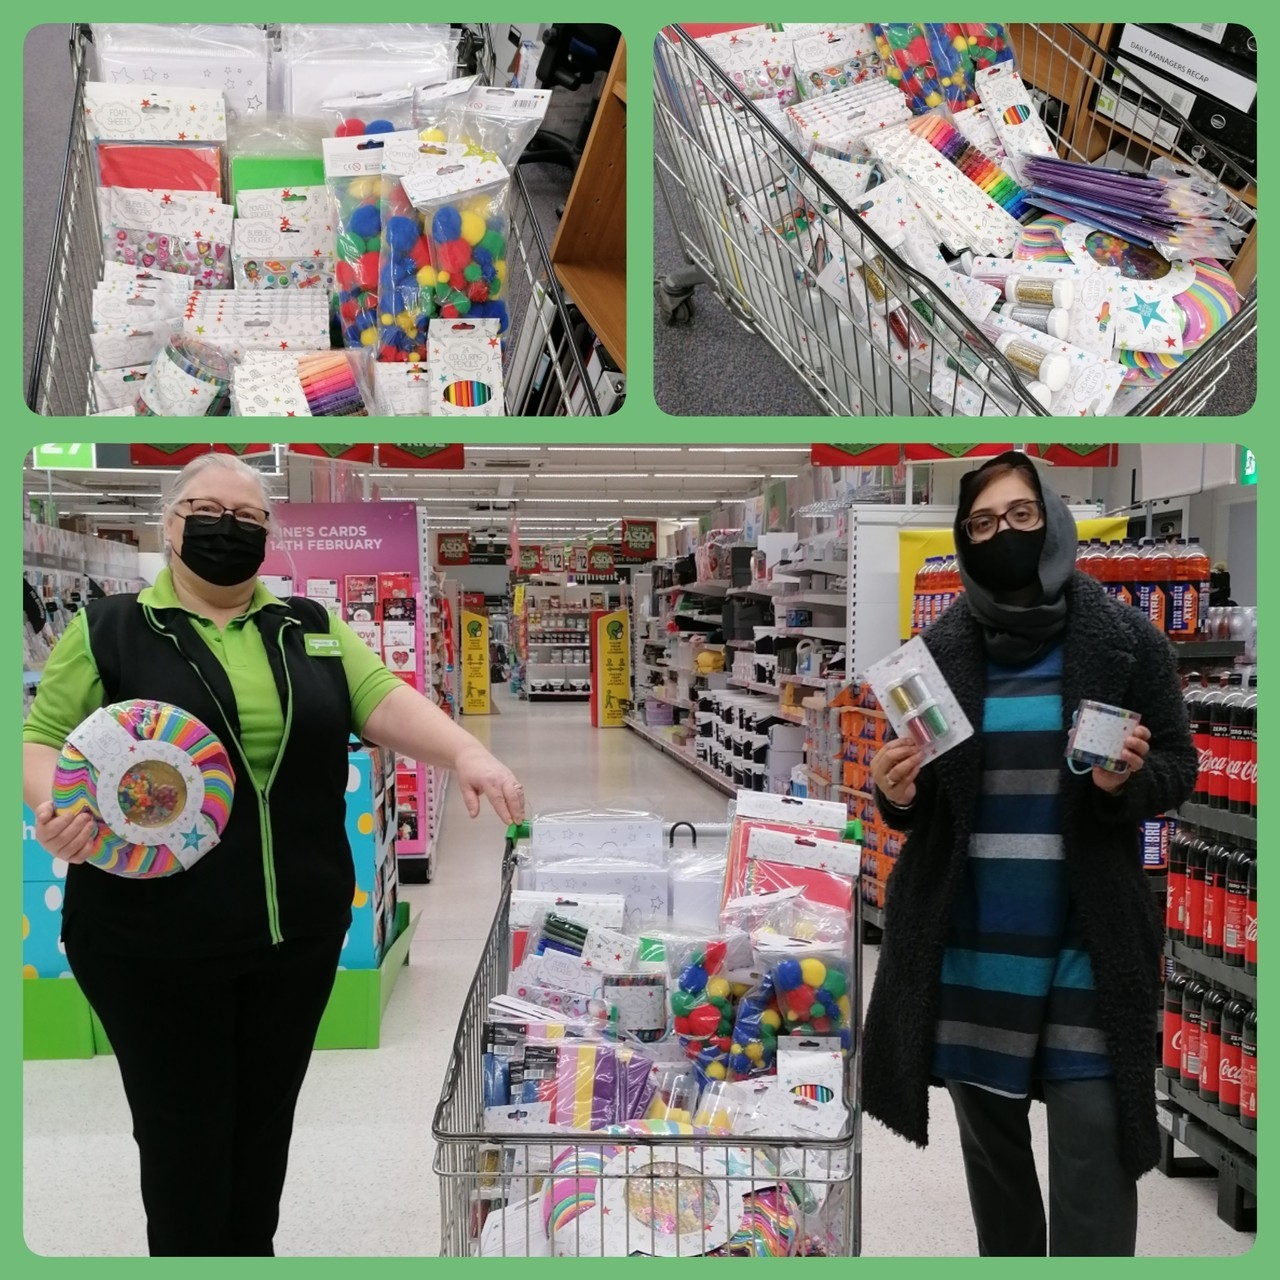 Grant to Miracle Foundation | Asda Motherwell